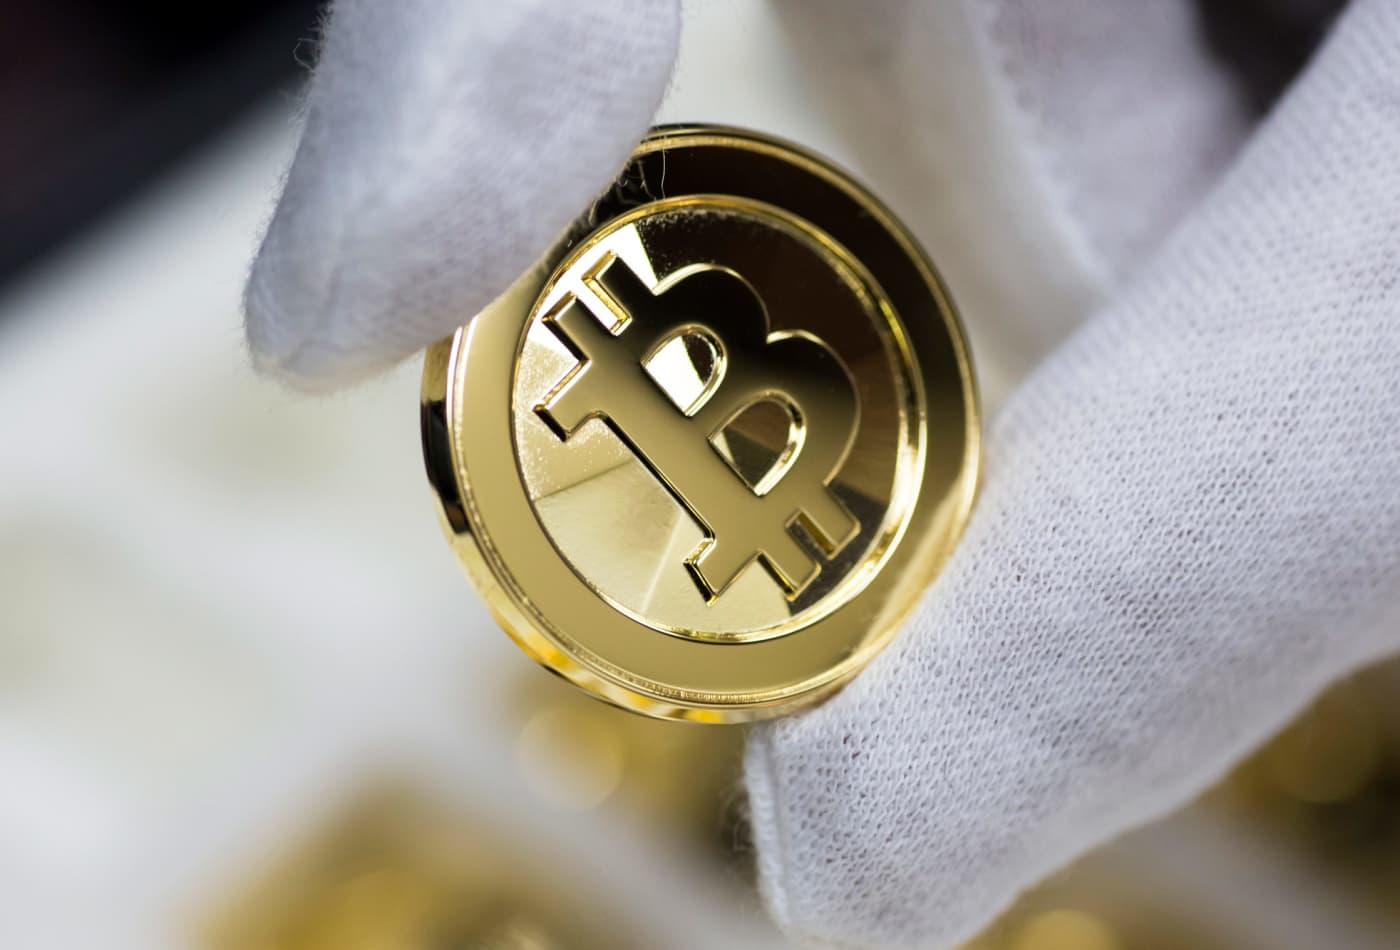 Bitcoin's digital gold, but Facebook's Libra is the digital dollar—here's why that matters